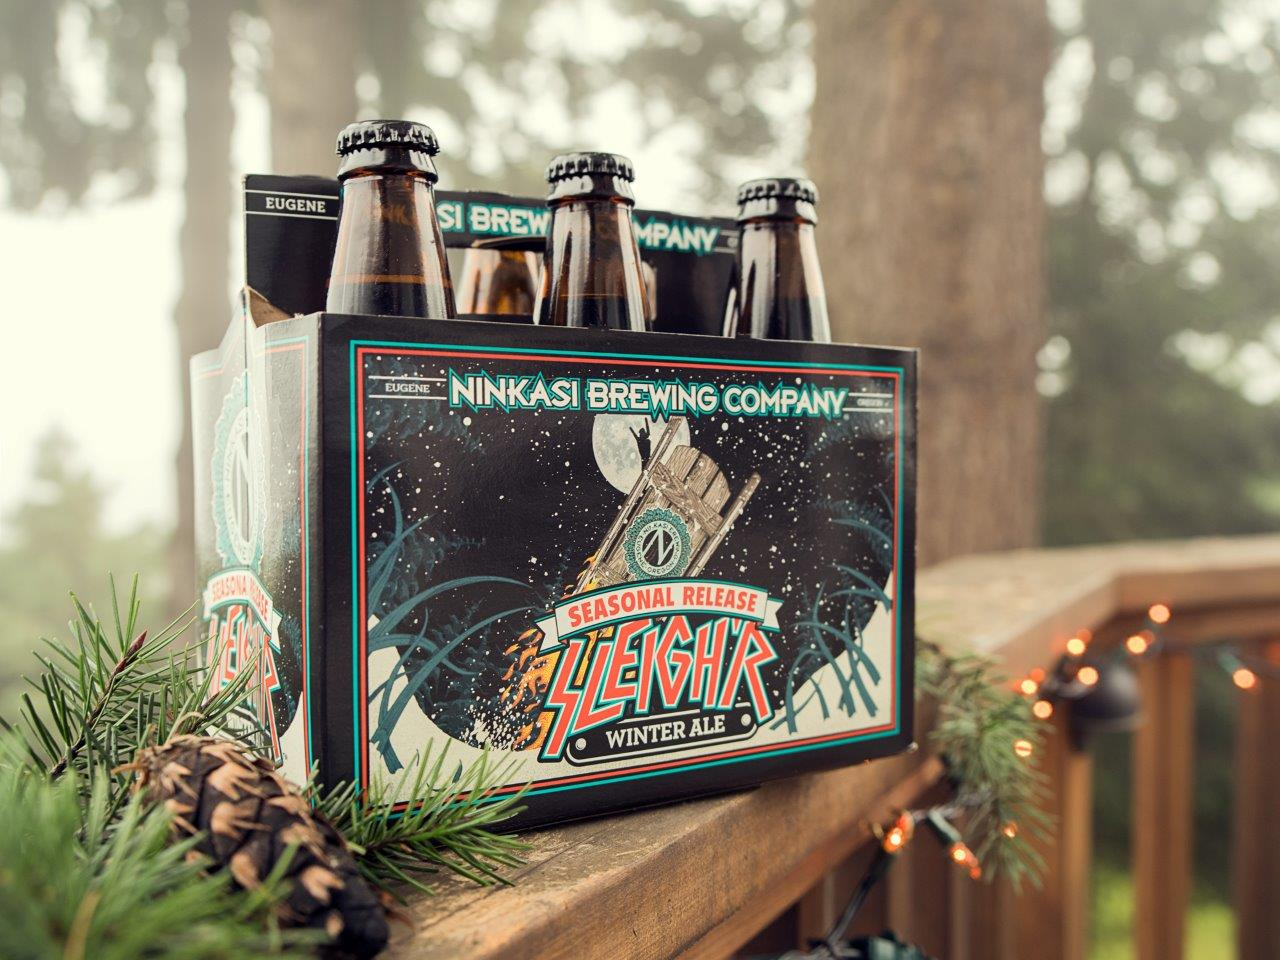 Sleigh'r Winter Ale Returns to Ninkasi Brewing Company's Seasonal Release Series